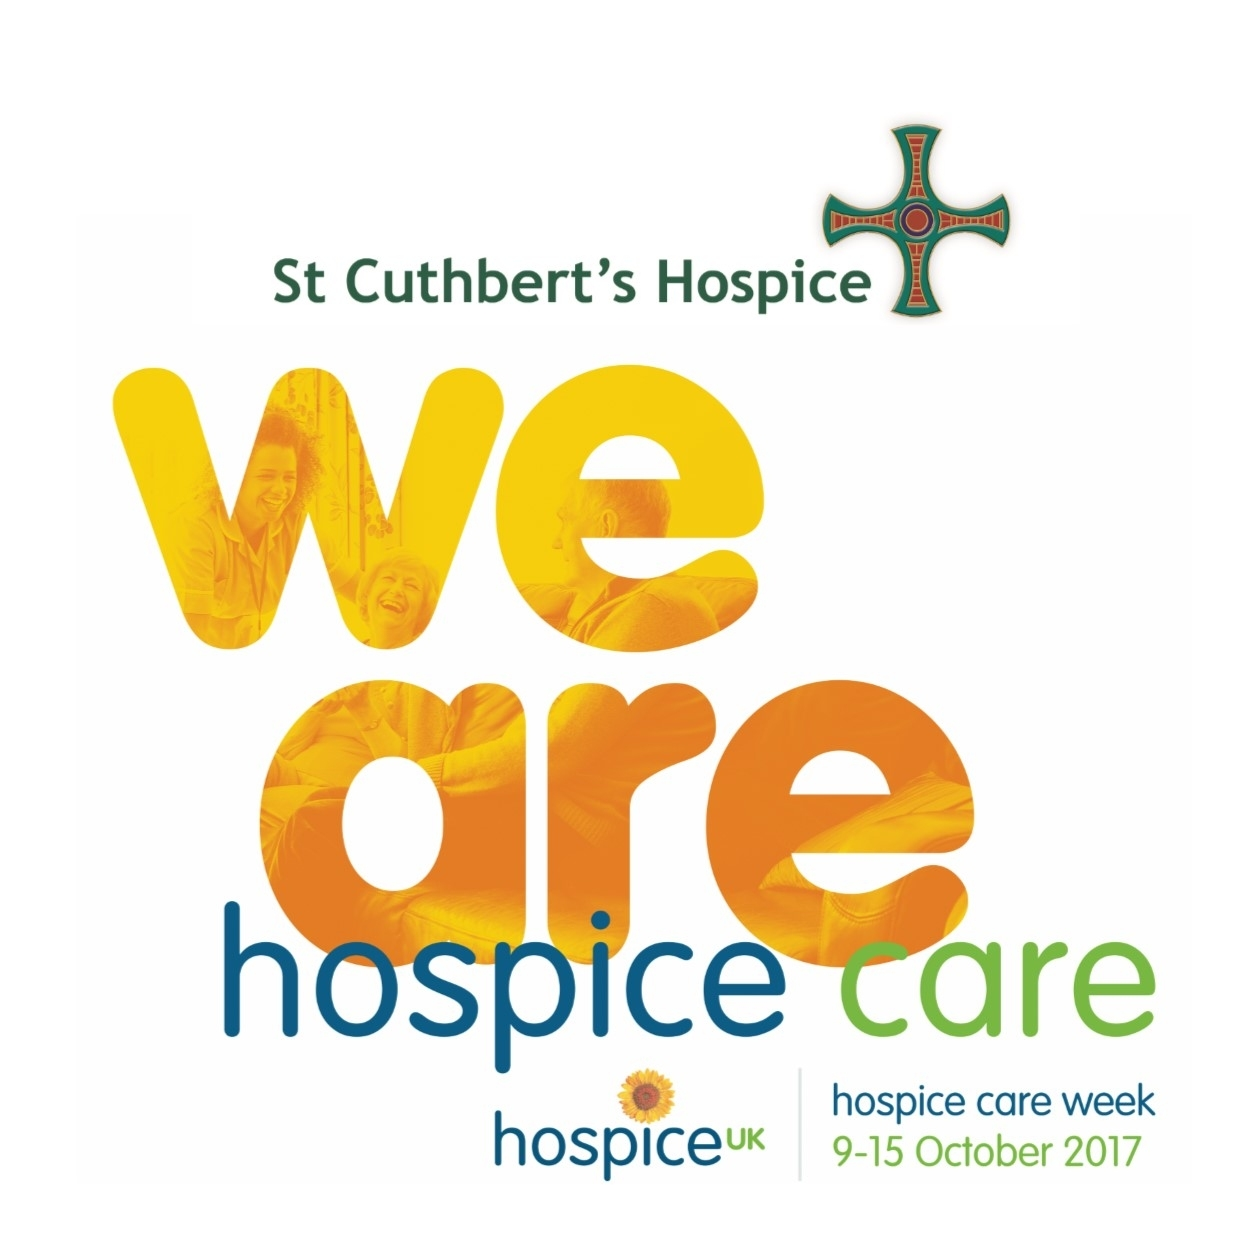 We Are Hospice Care pertaining to Garden House Hospice Make A Will Week